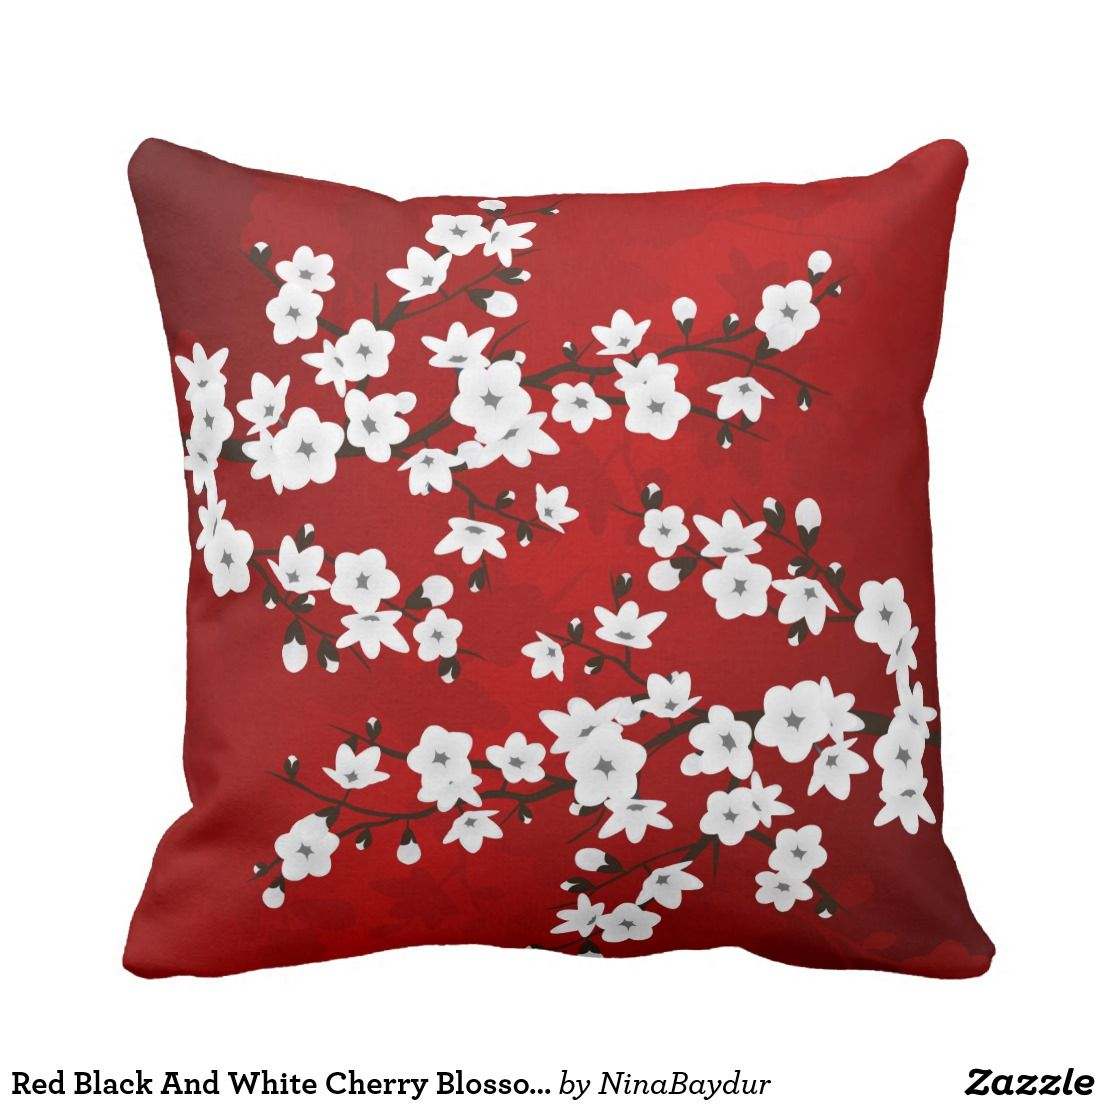 Red Black And White Cherry Blossoms Throw Pillow Zazzle Com White Cherry Blossom Throw Pillows Throw Pillows White